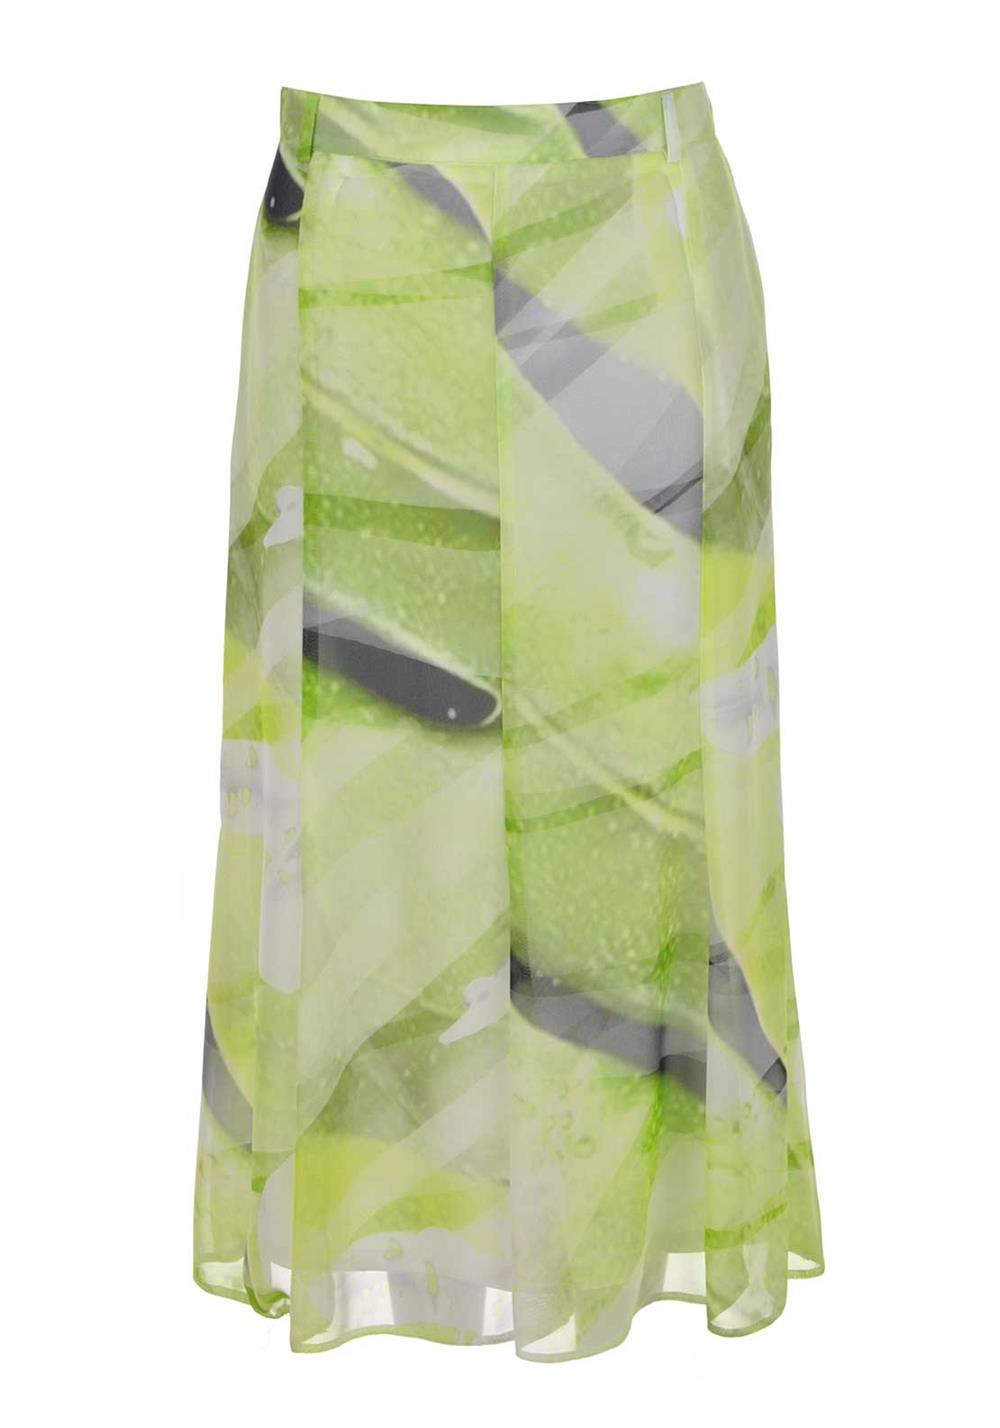 Eugen Klein Colourful Printed Chiffon Skirt, Lime